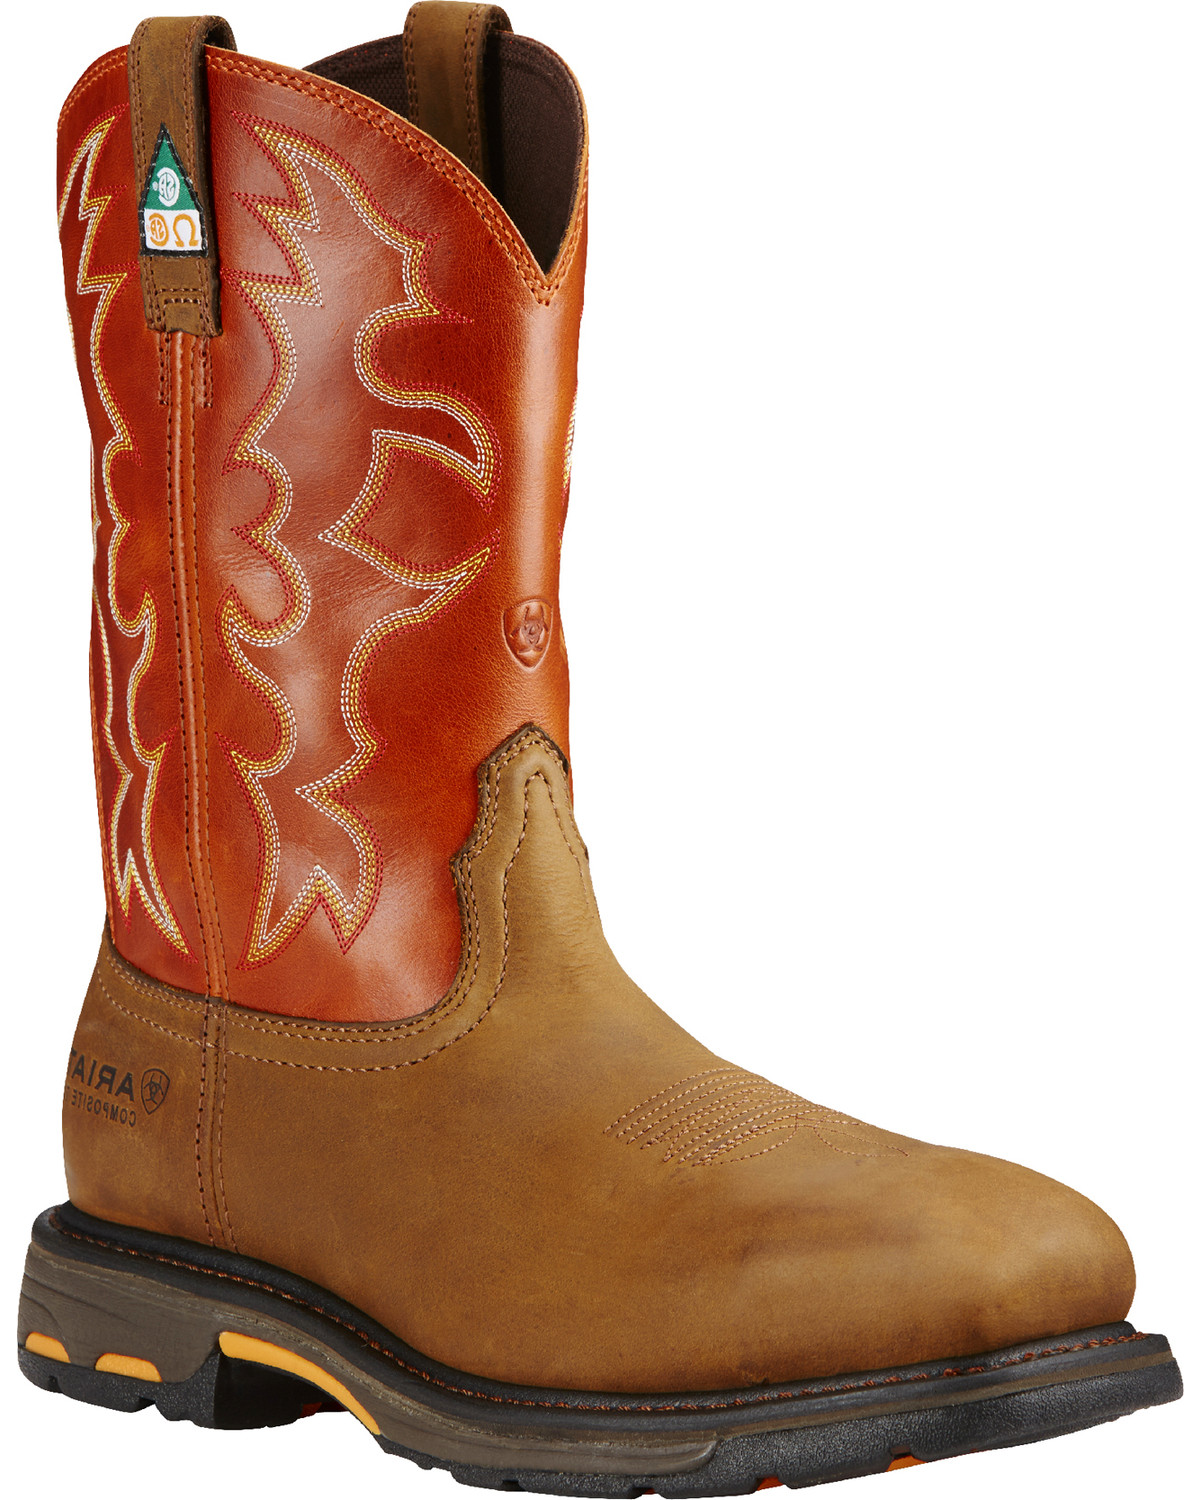 0bcc9e62758 Ariat Men's WorkHog CSA Work Boots